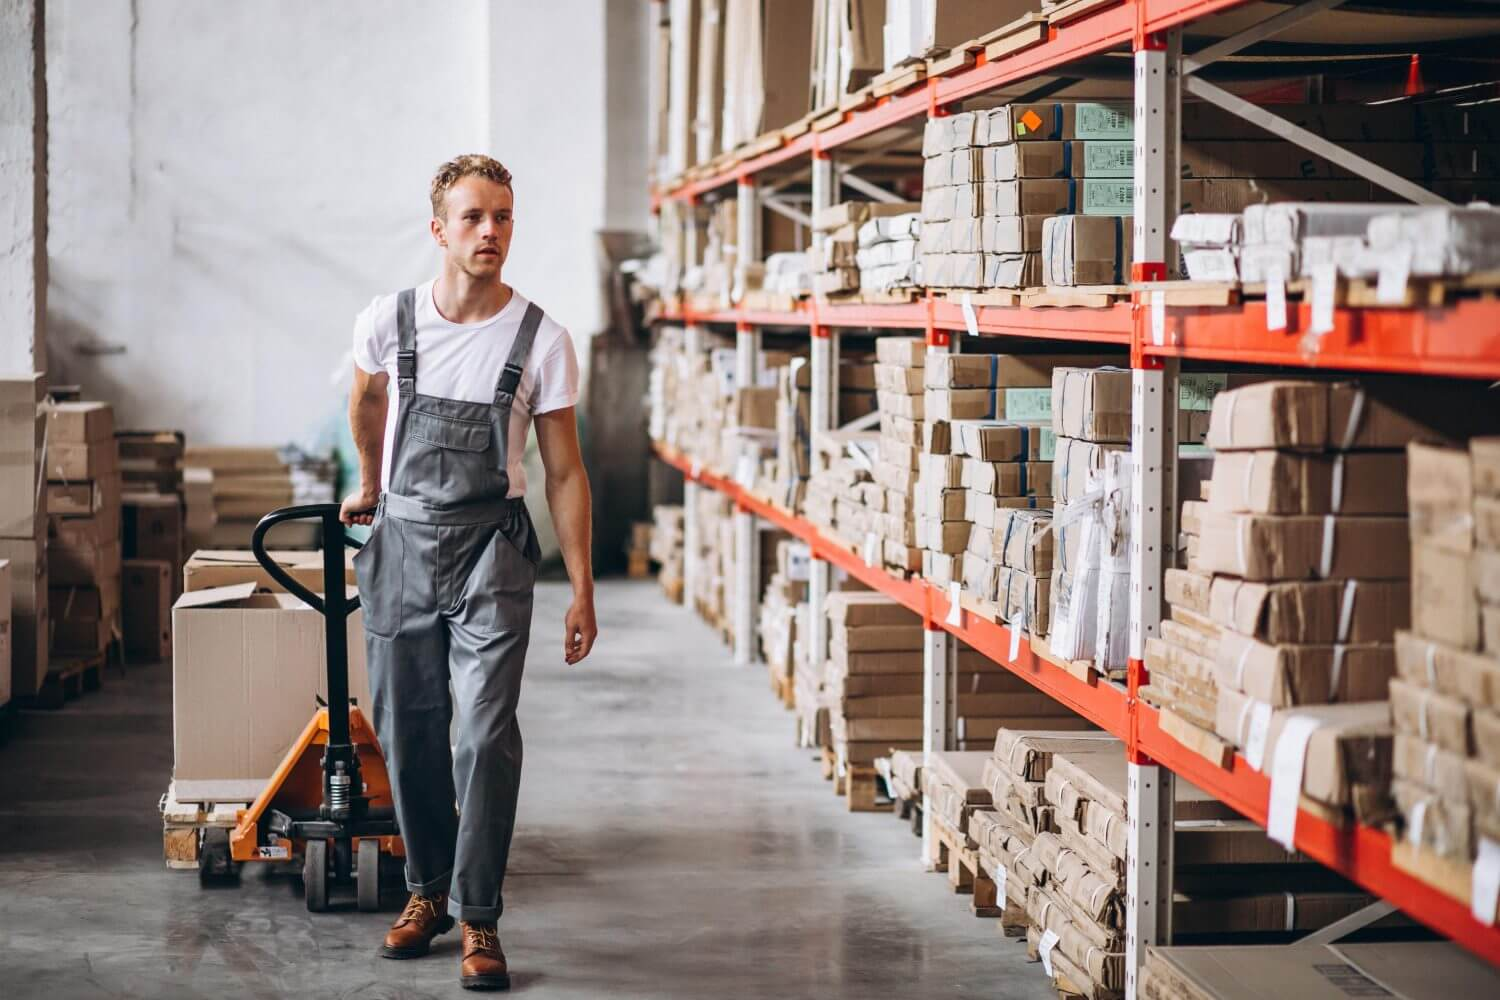 Just in time inventory management, a popular way to improve inventory management and cost.